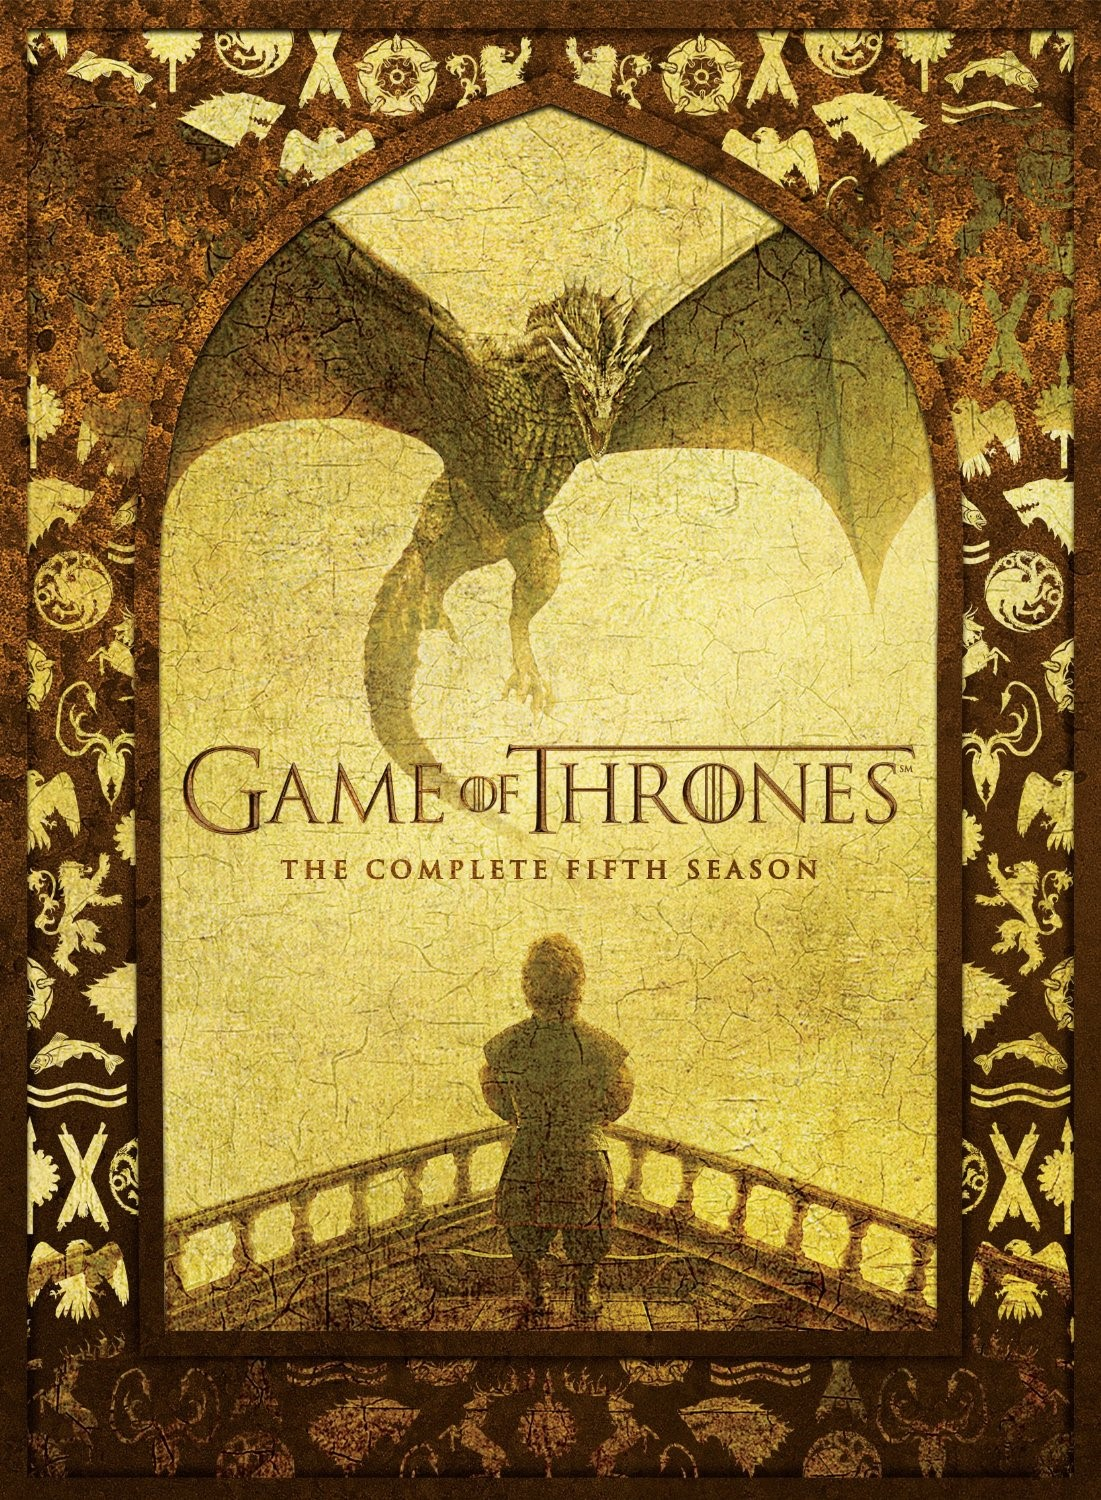 Game of thrones season five cover